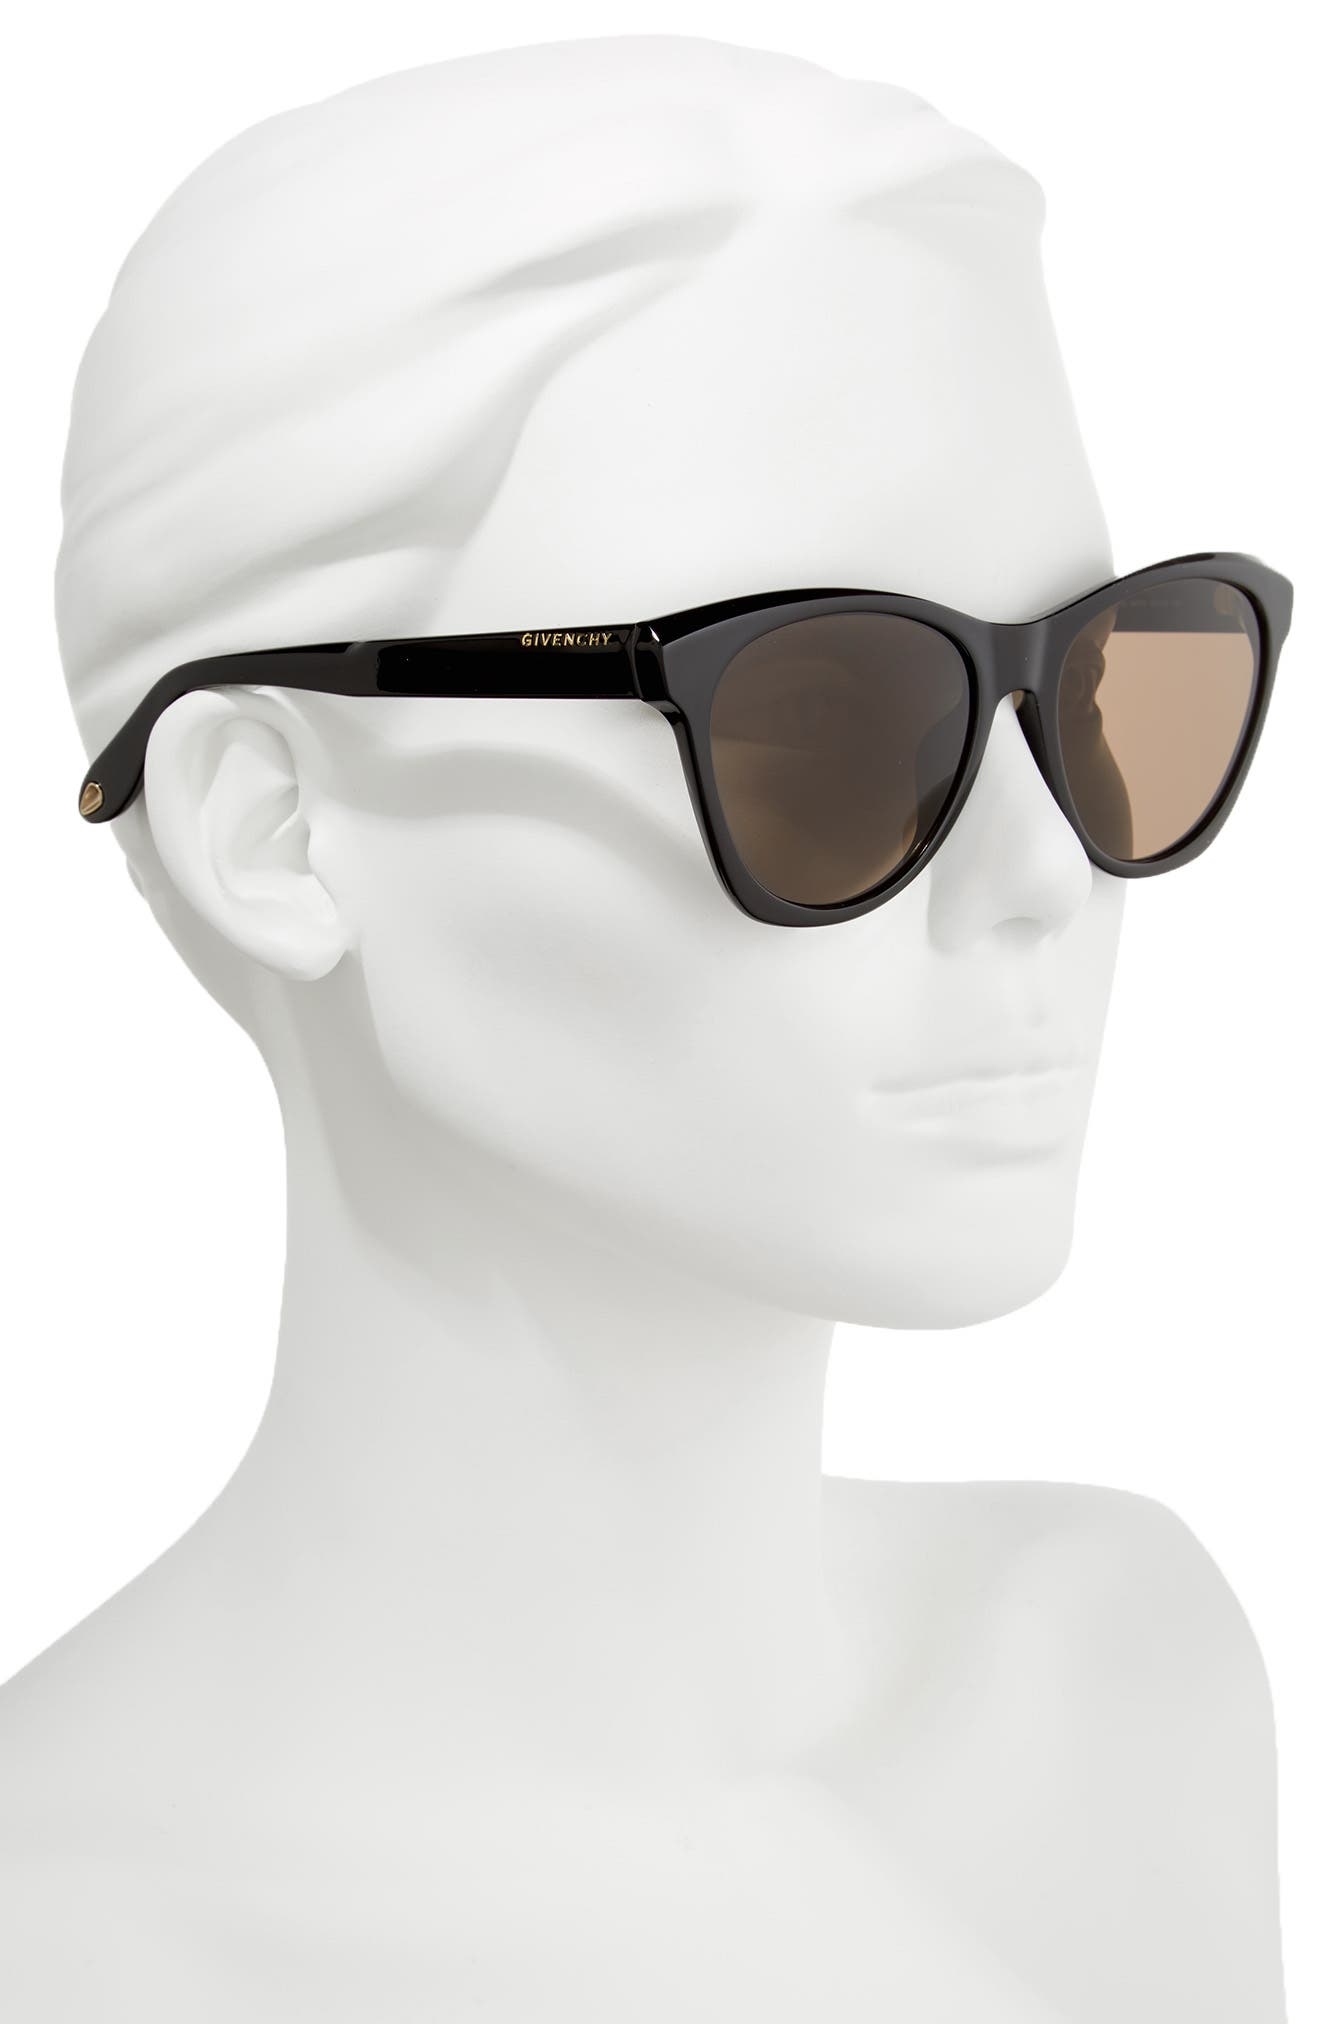 55mm Cat Eye Sunglasses,                             Alternate thumbnail 2, color,                             Black